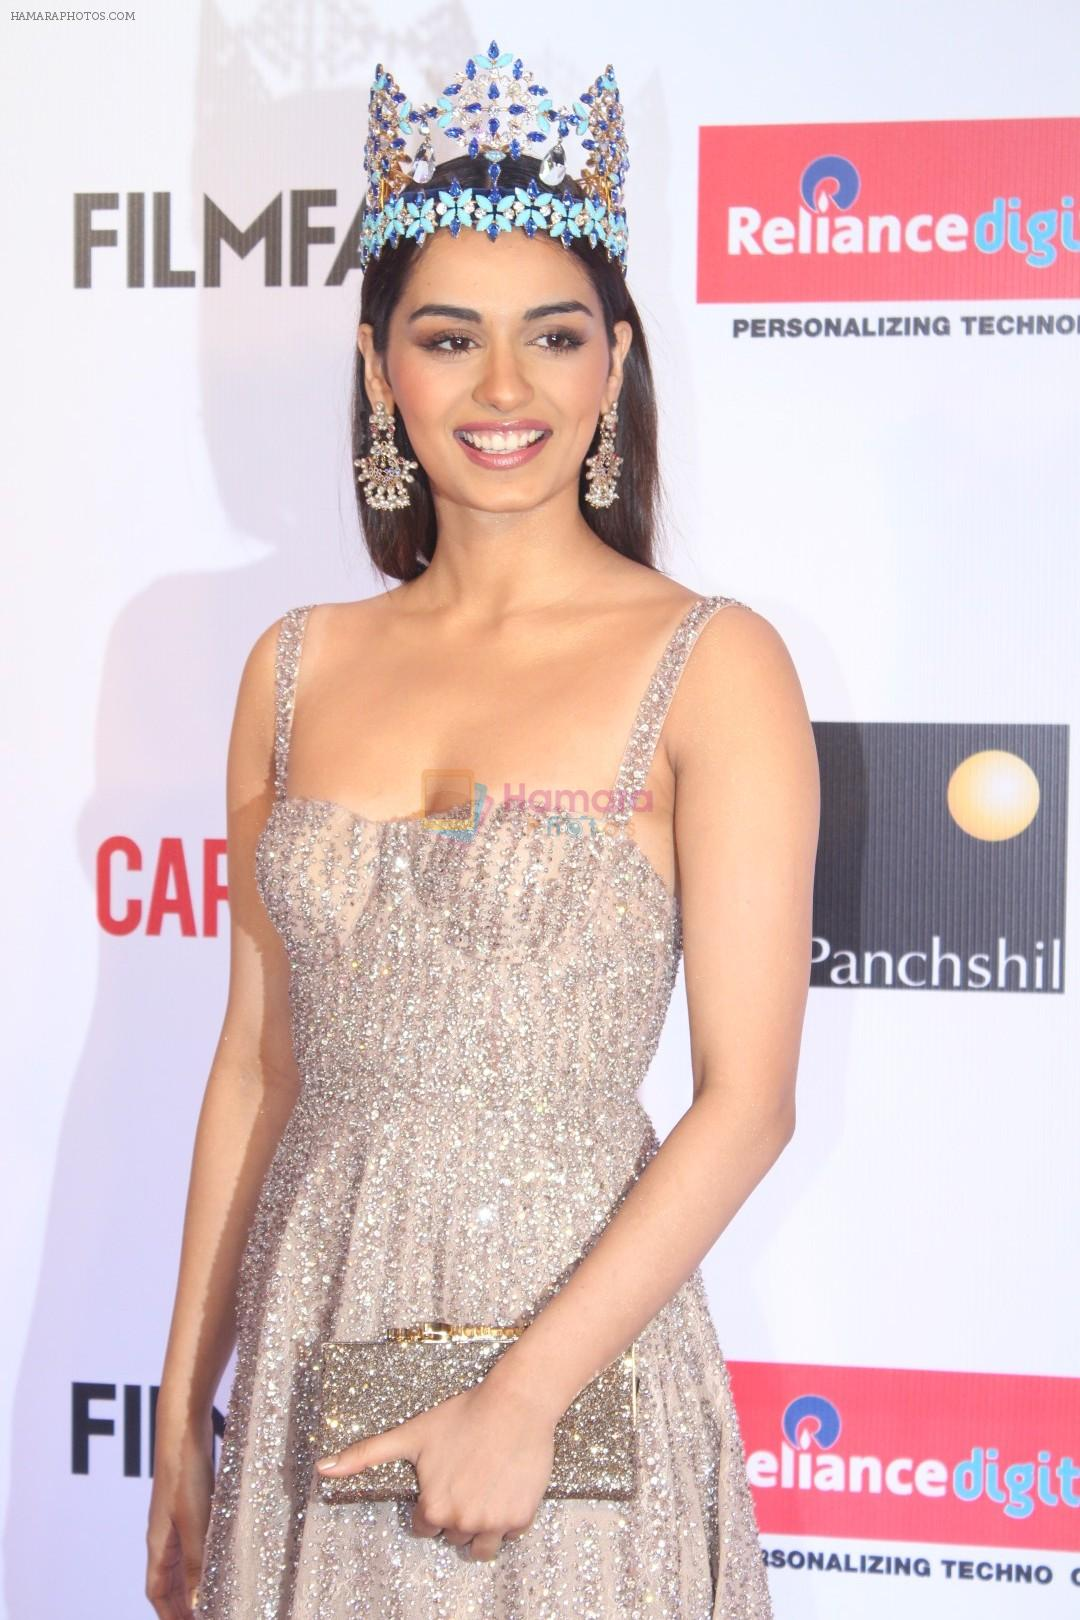 The Official Thread of Miss World 2017 ® Manushi Chhillar - India - Page 2 Hpse_fullsize__2592050475_Manushi%20Chillar%20at%20the%20Red%20Carpet%20Of%20Filmfare%20Glamour%20%26%20Style%20Awards%20on%201st%20Dec%202017%20%2886%29_5a2248803fb6b